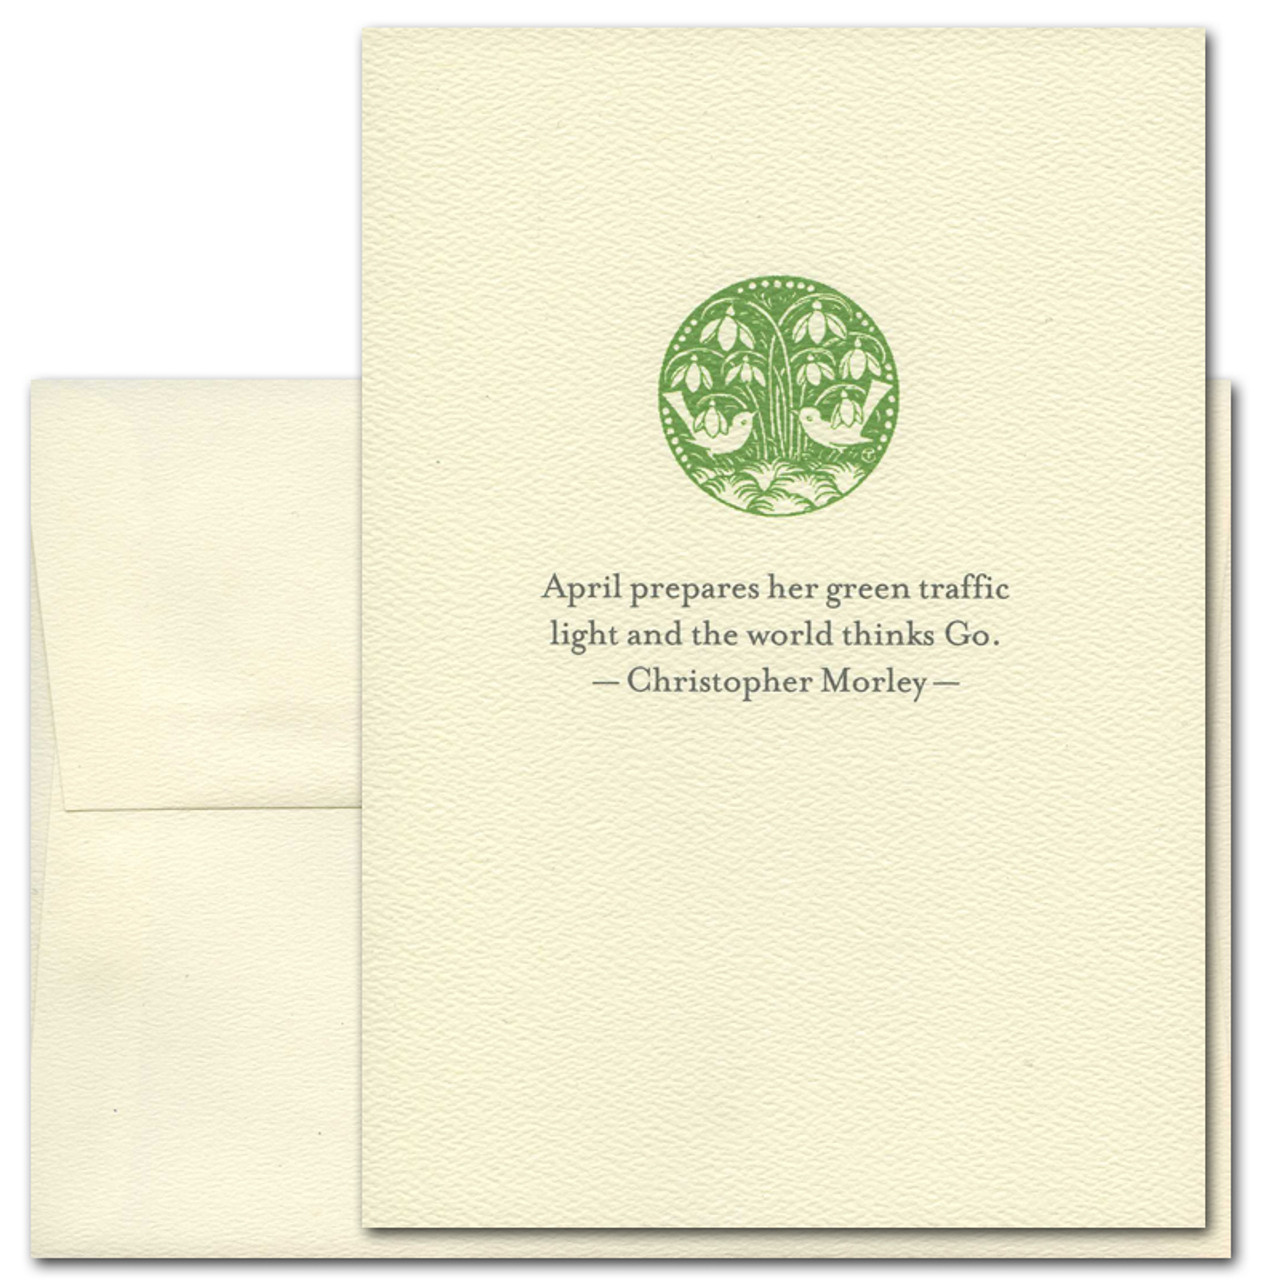 Christopher Marley Quotation Card on April.  Cover has an illustration of spring in green, above the words: April prepares her green traffic light, and the world thinks GO.  Christopher Morley.